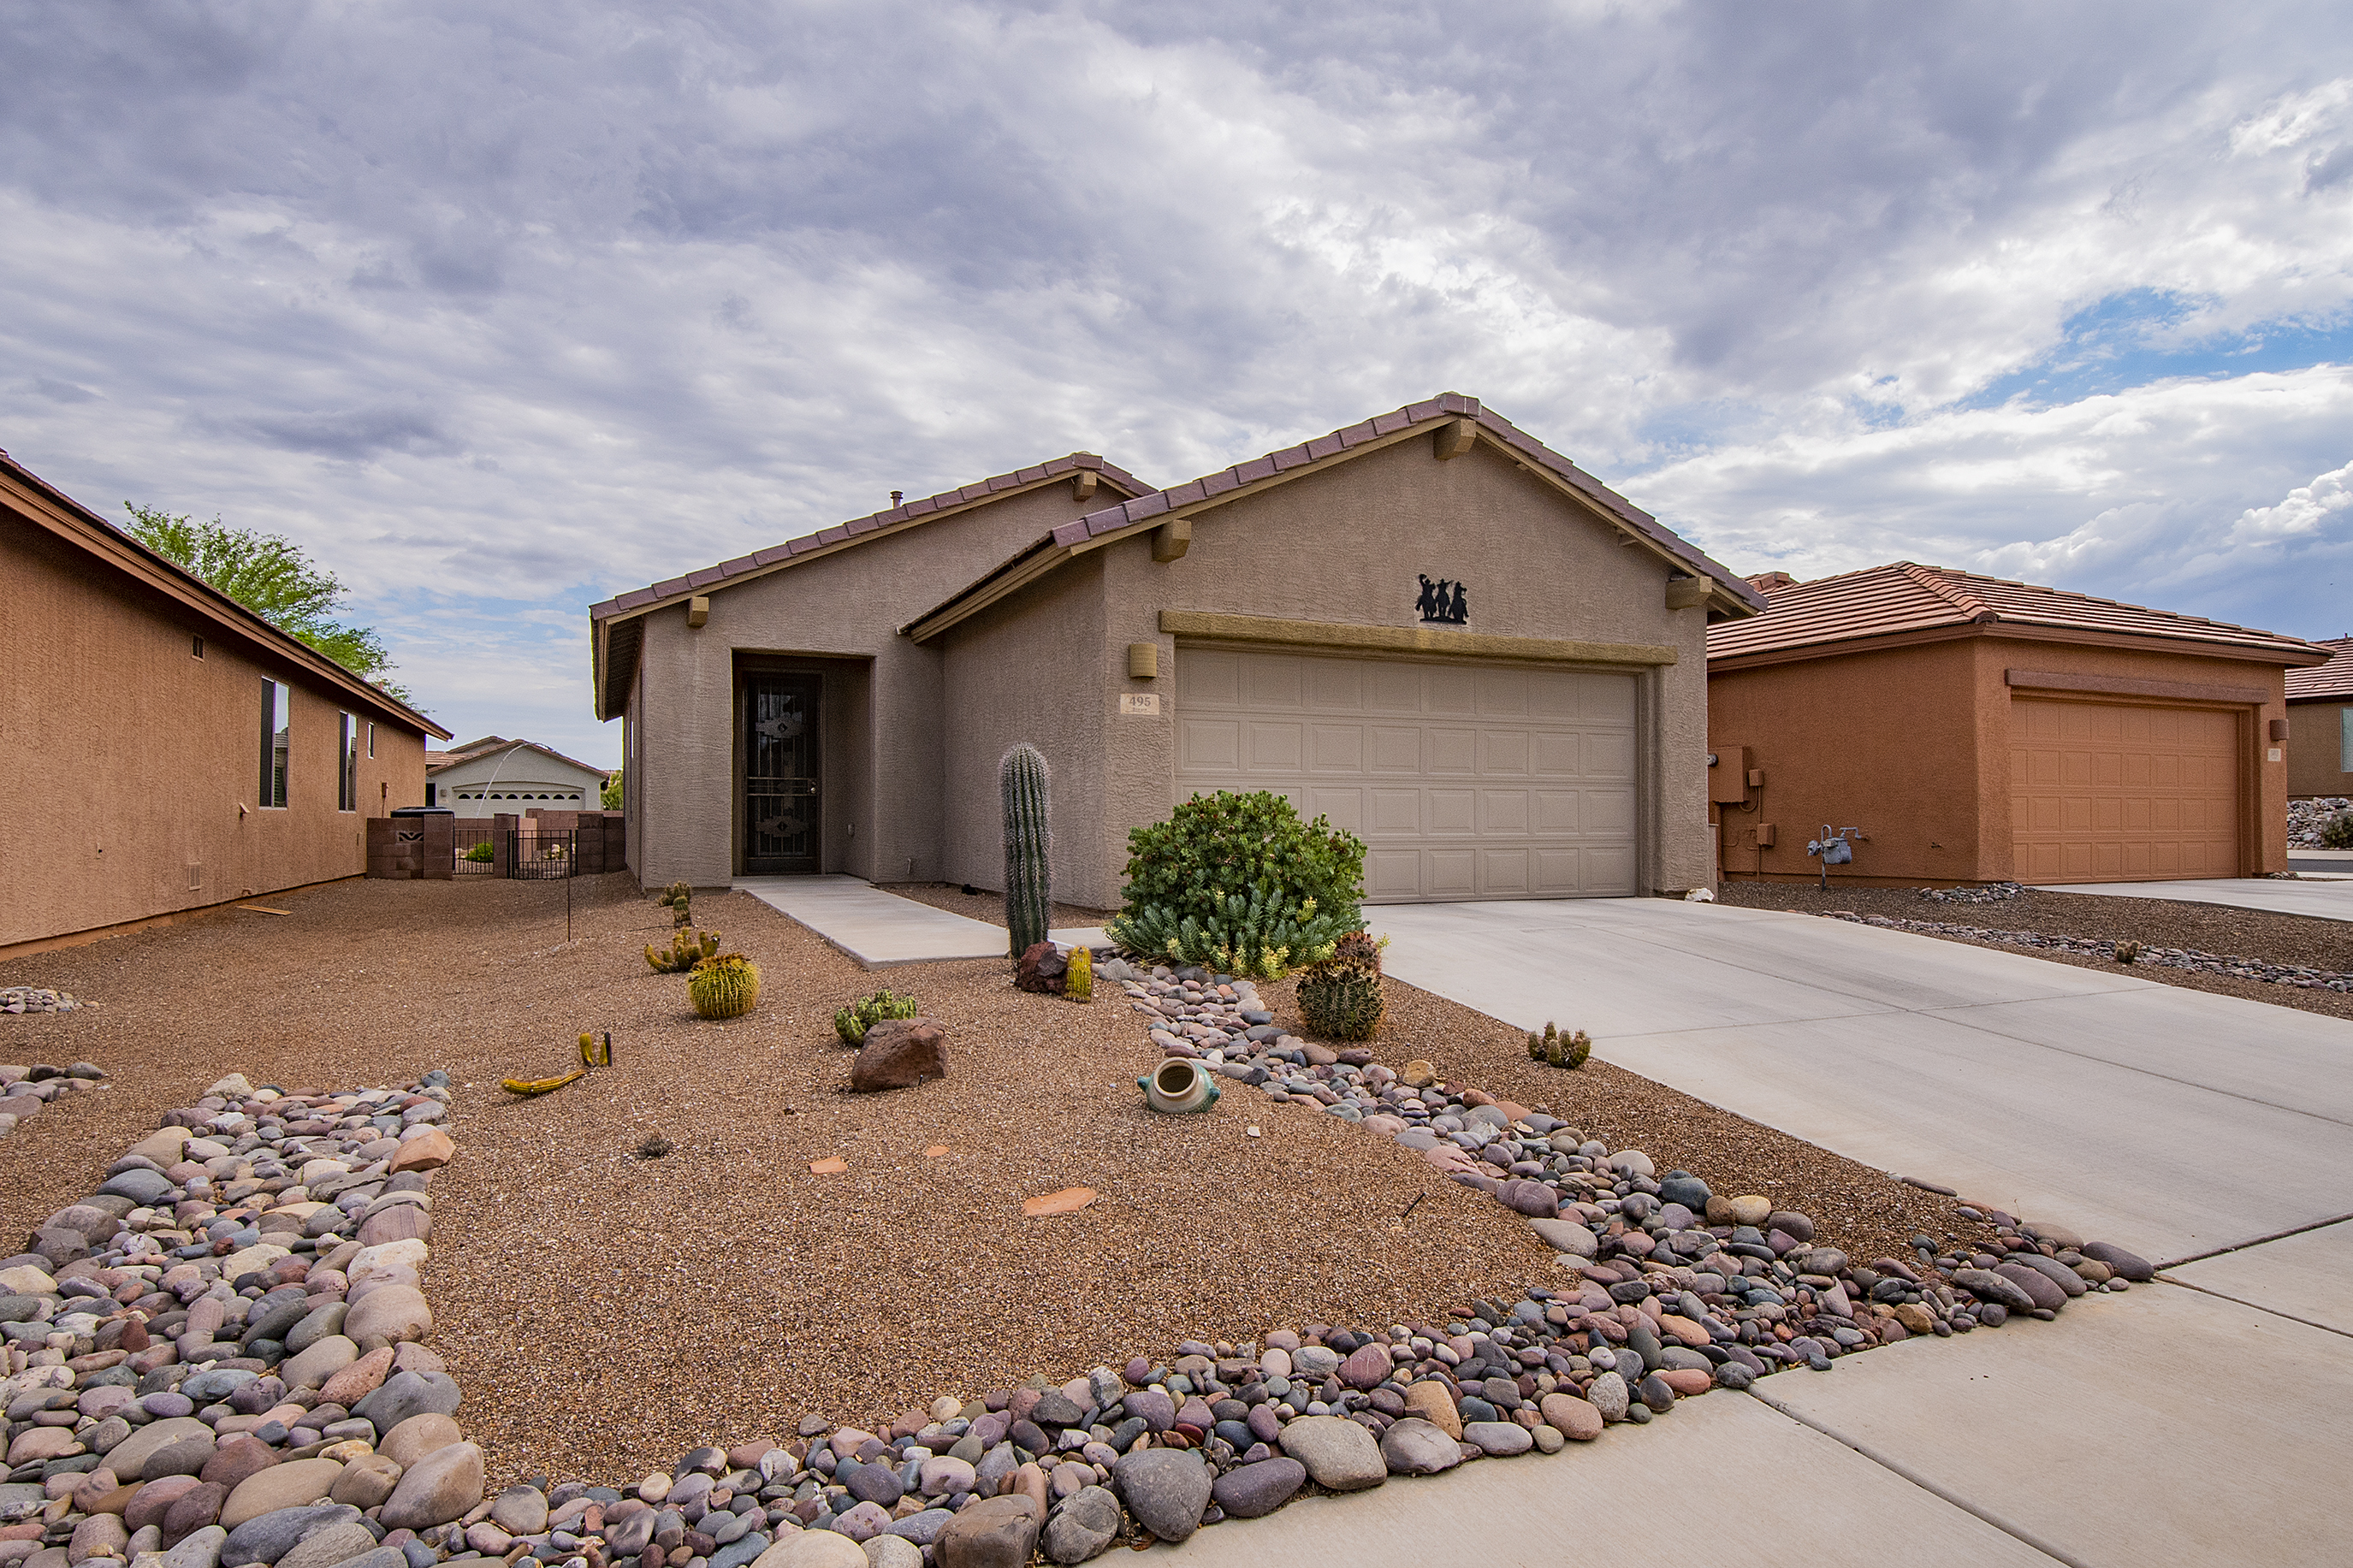 Casa unifamiliar en venta en/de 495 W Bazille Way, Green Valley, Arizona ,85614  , EUA